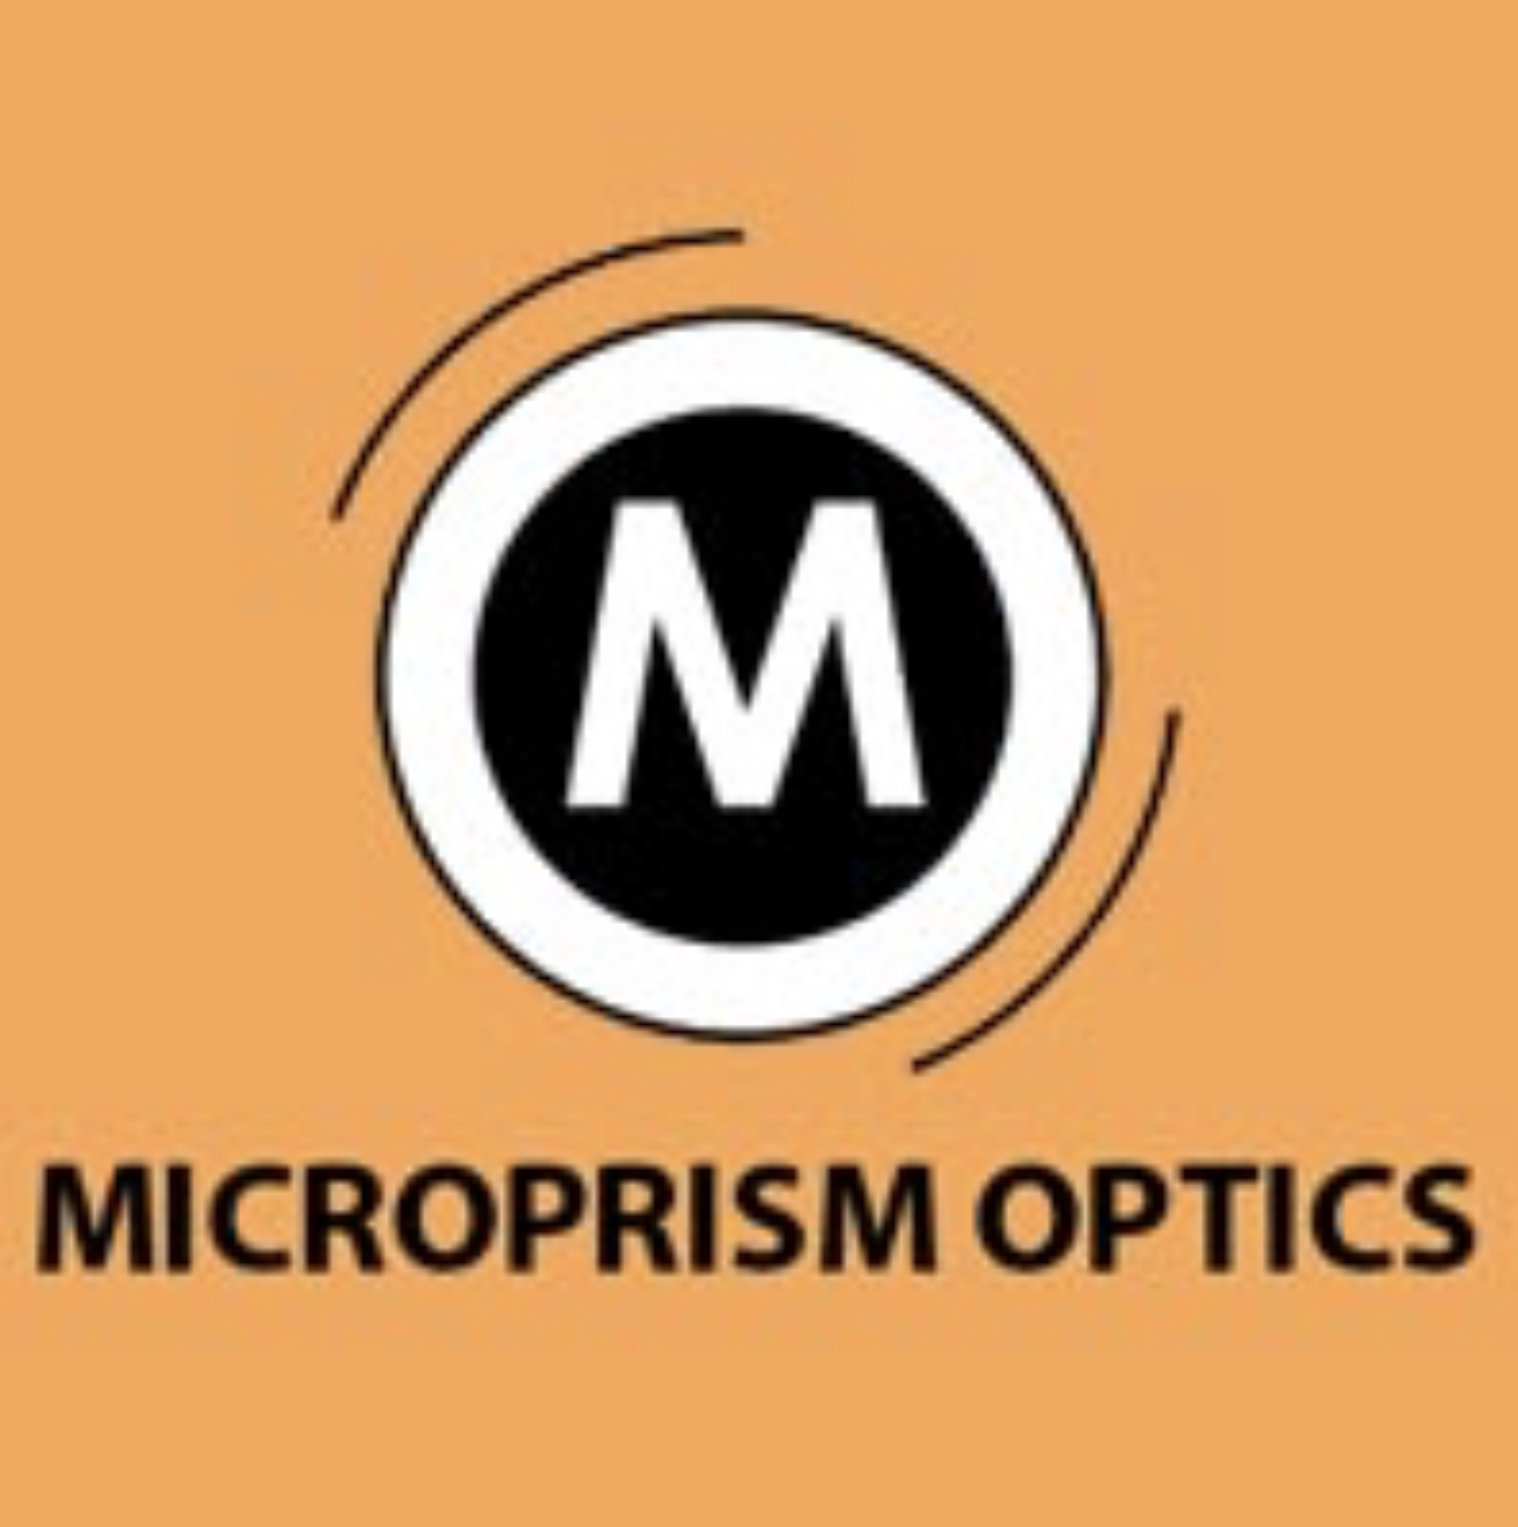 Microprism Optics.jpeg